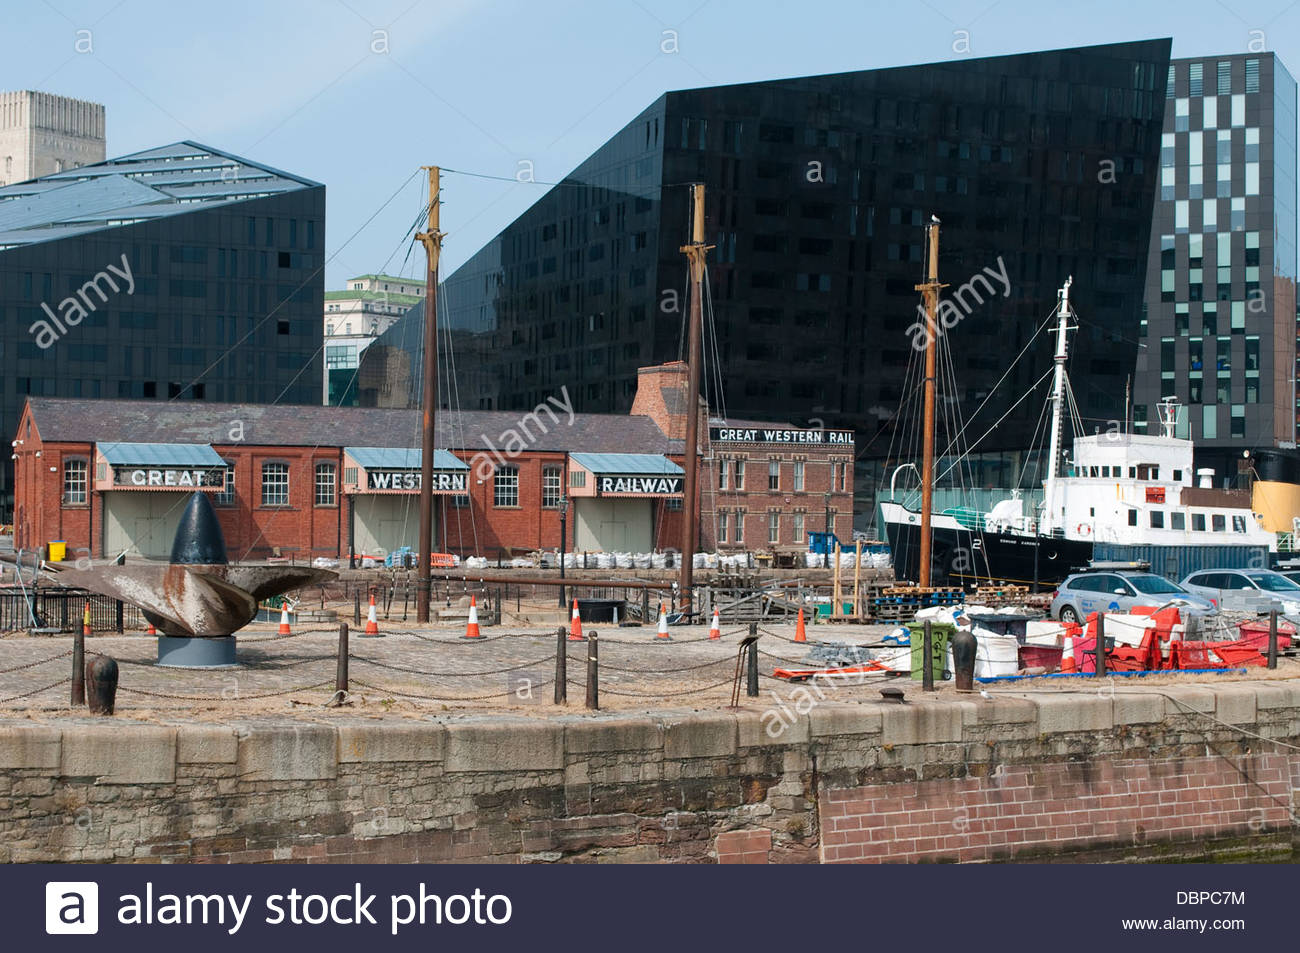 Modern and old buildings, Cunning Dock, Liverpool, UK - Stock Image